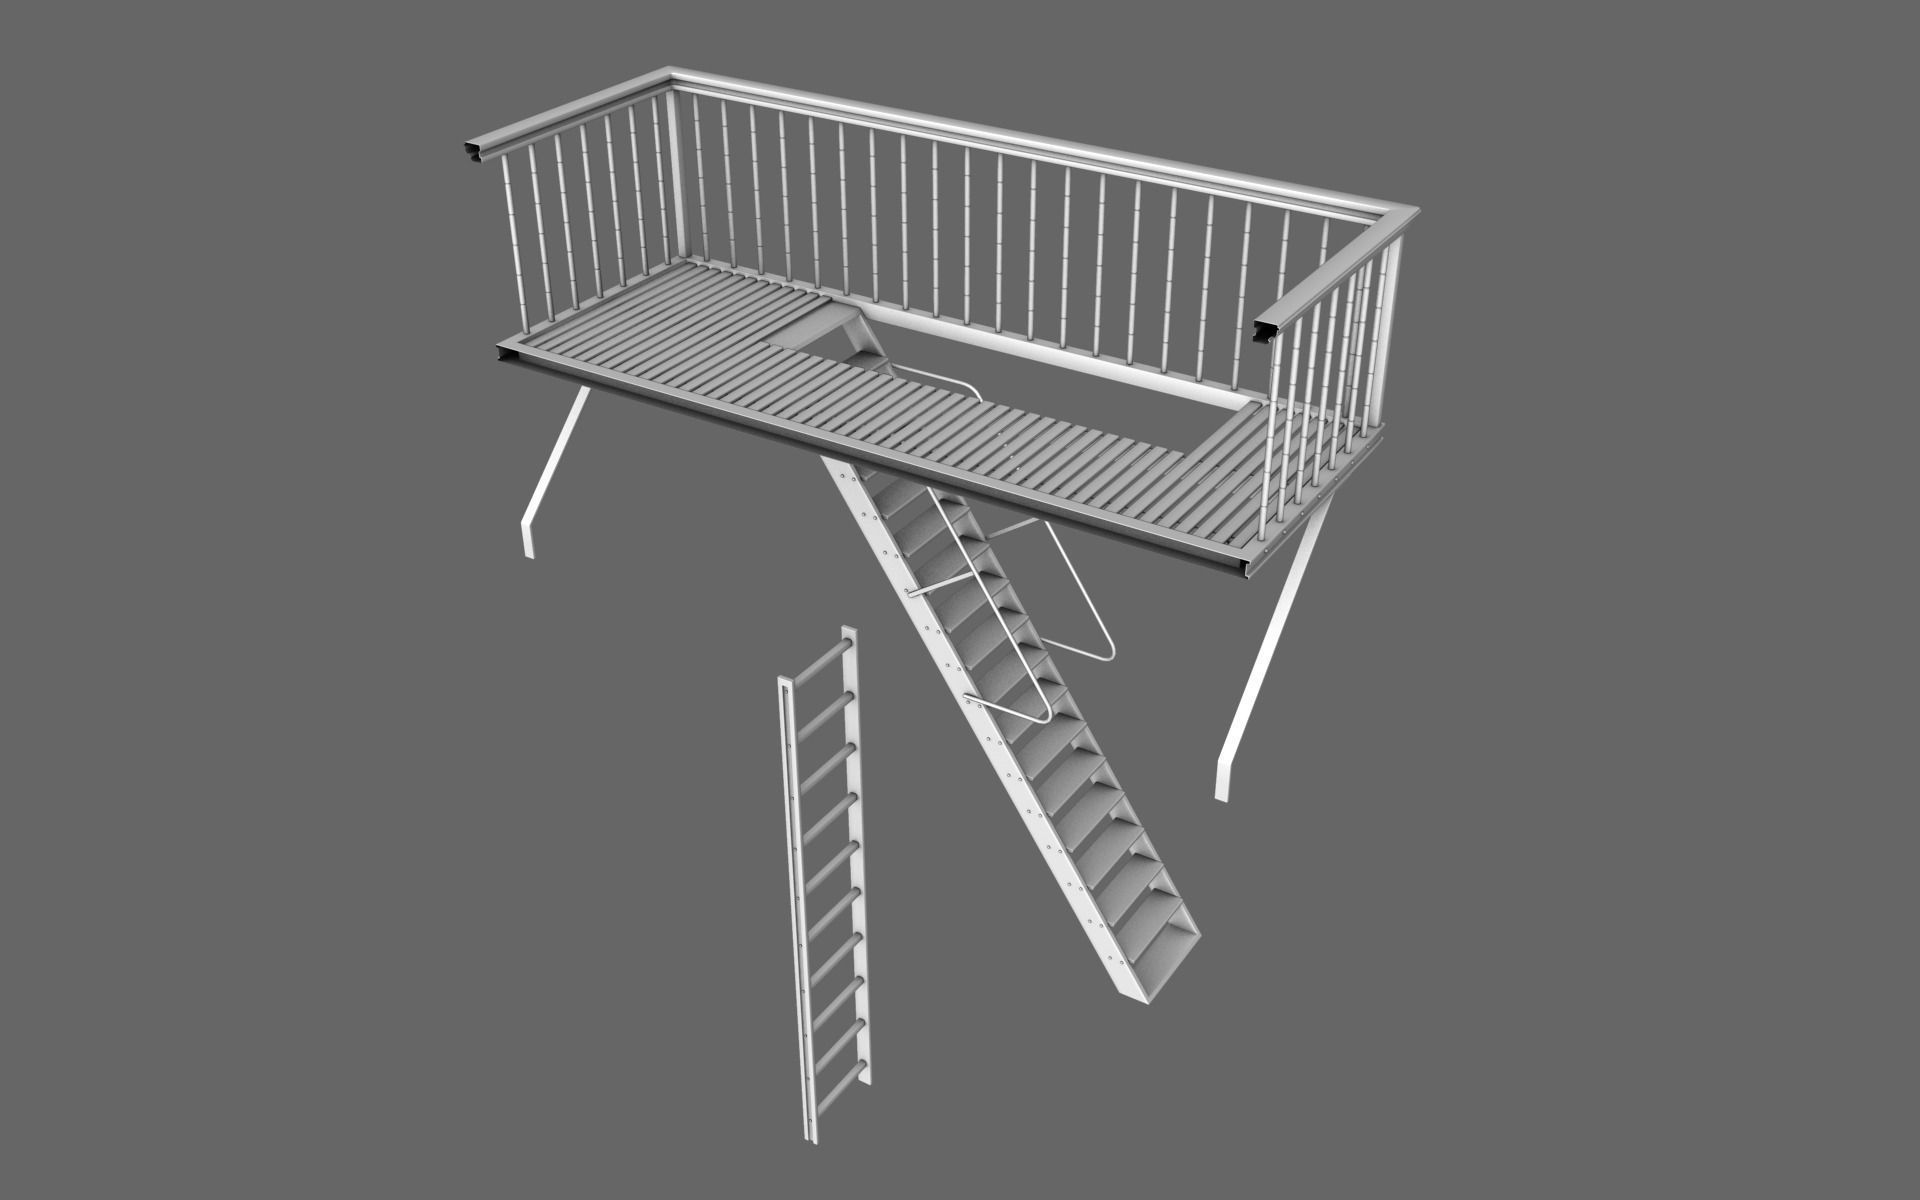 Urban balcony 3d model obj for Balcony models